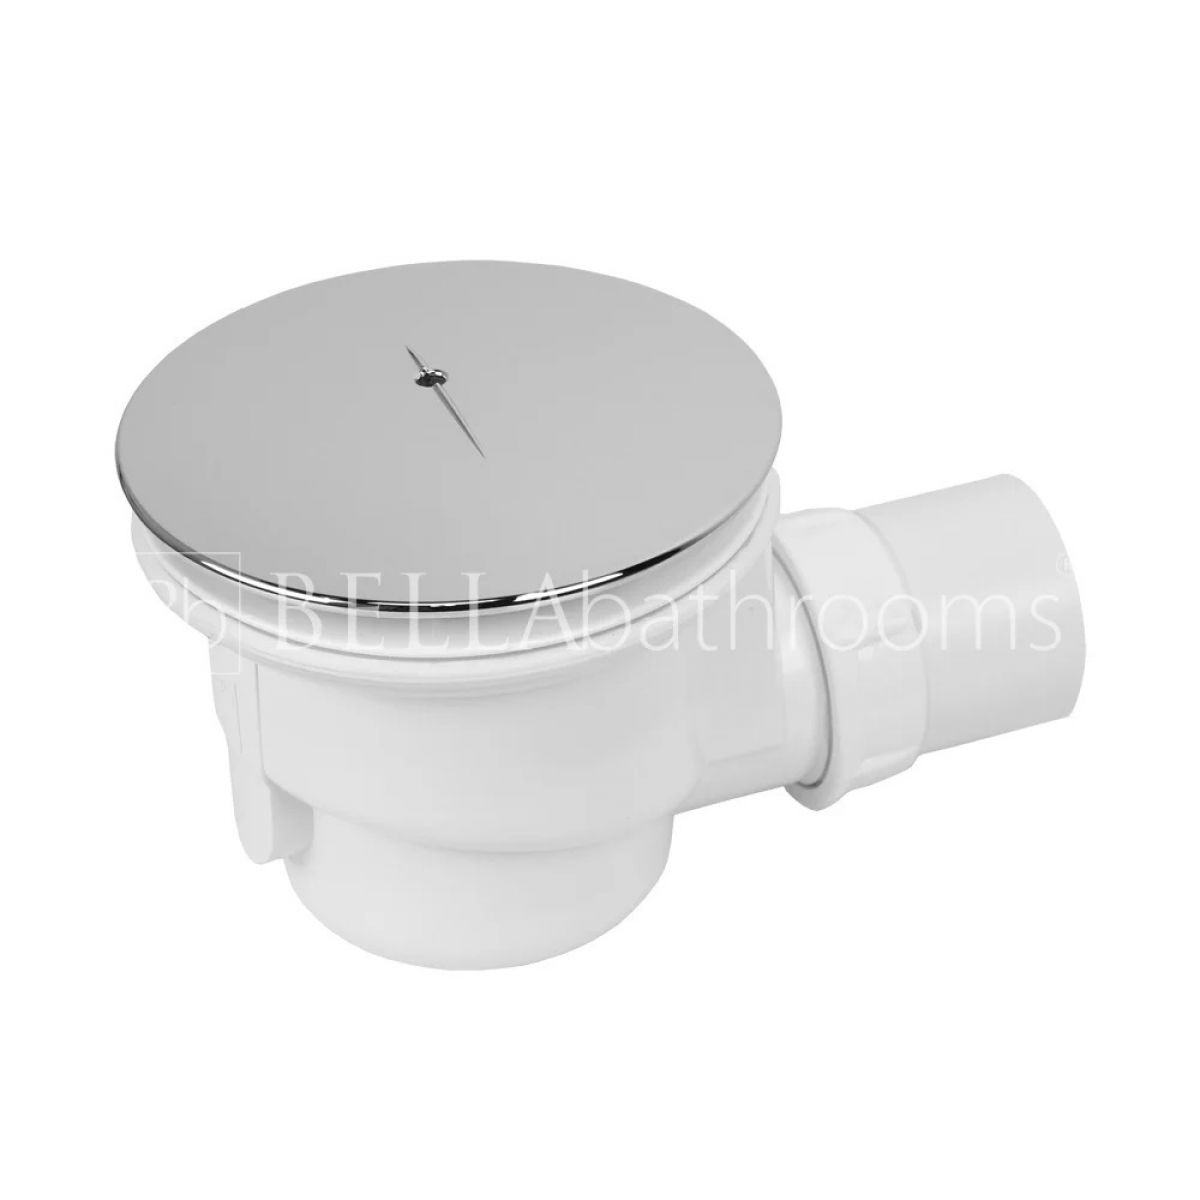 April High Flow Shower Waste 90mm